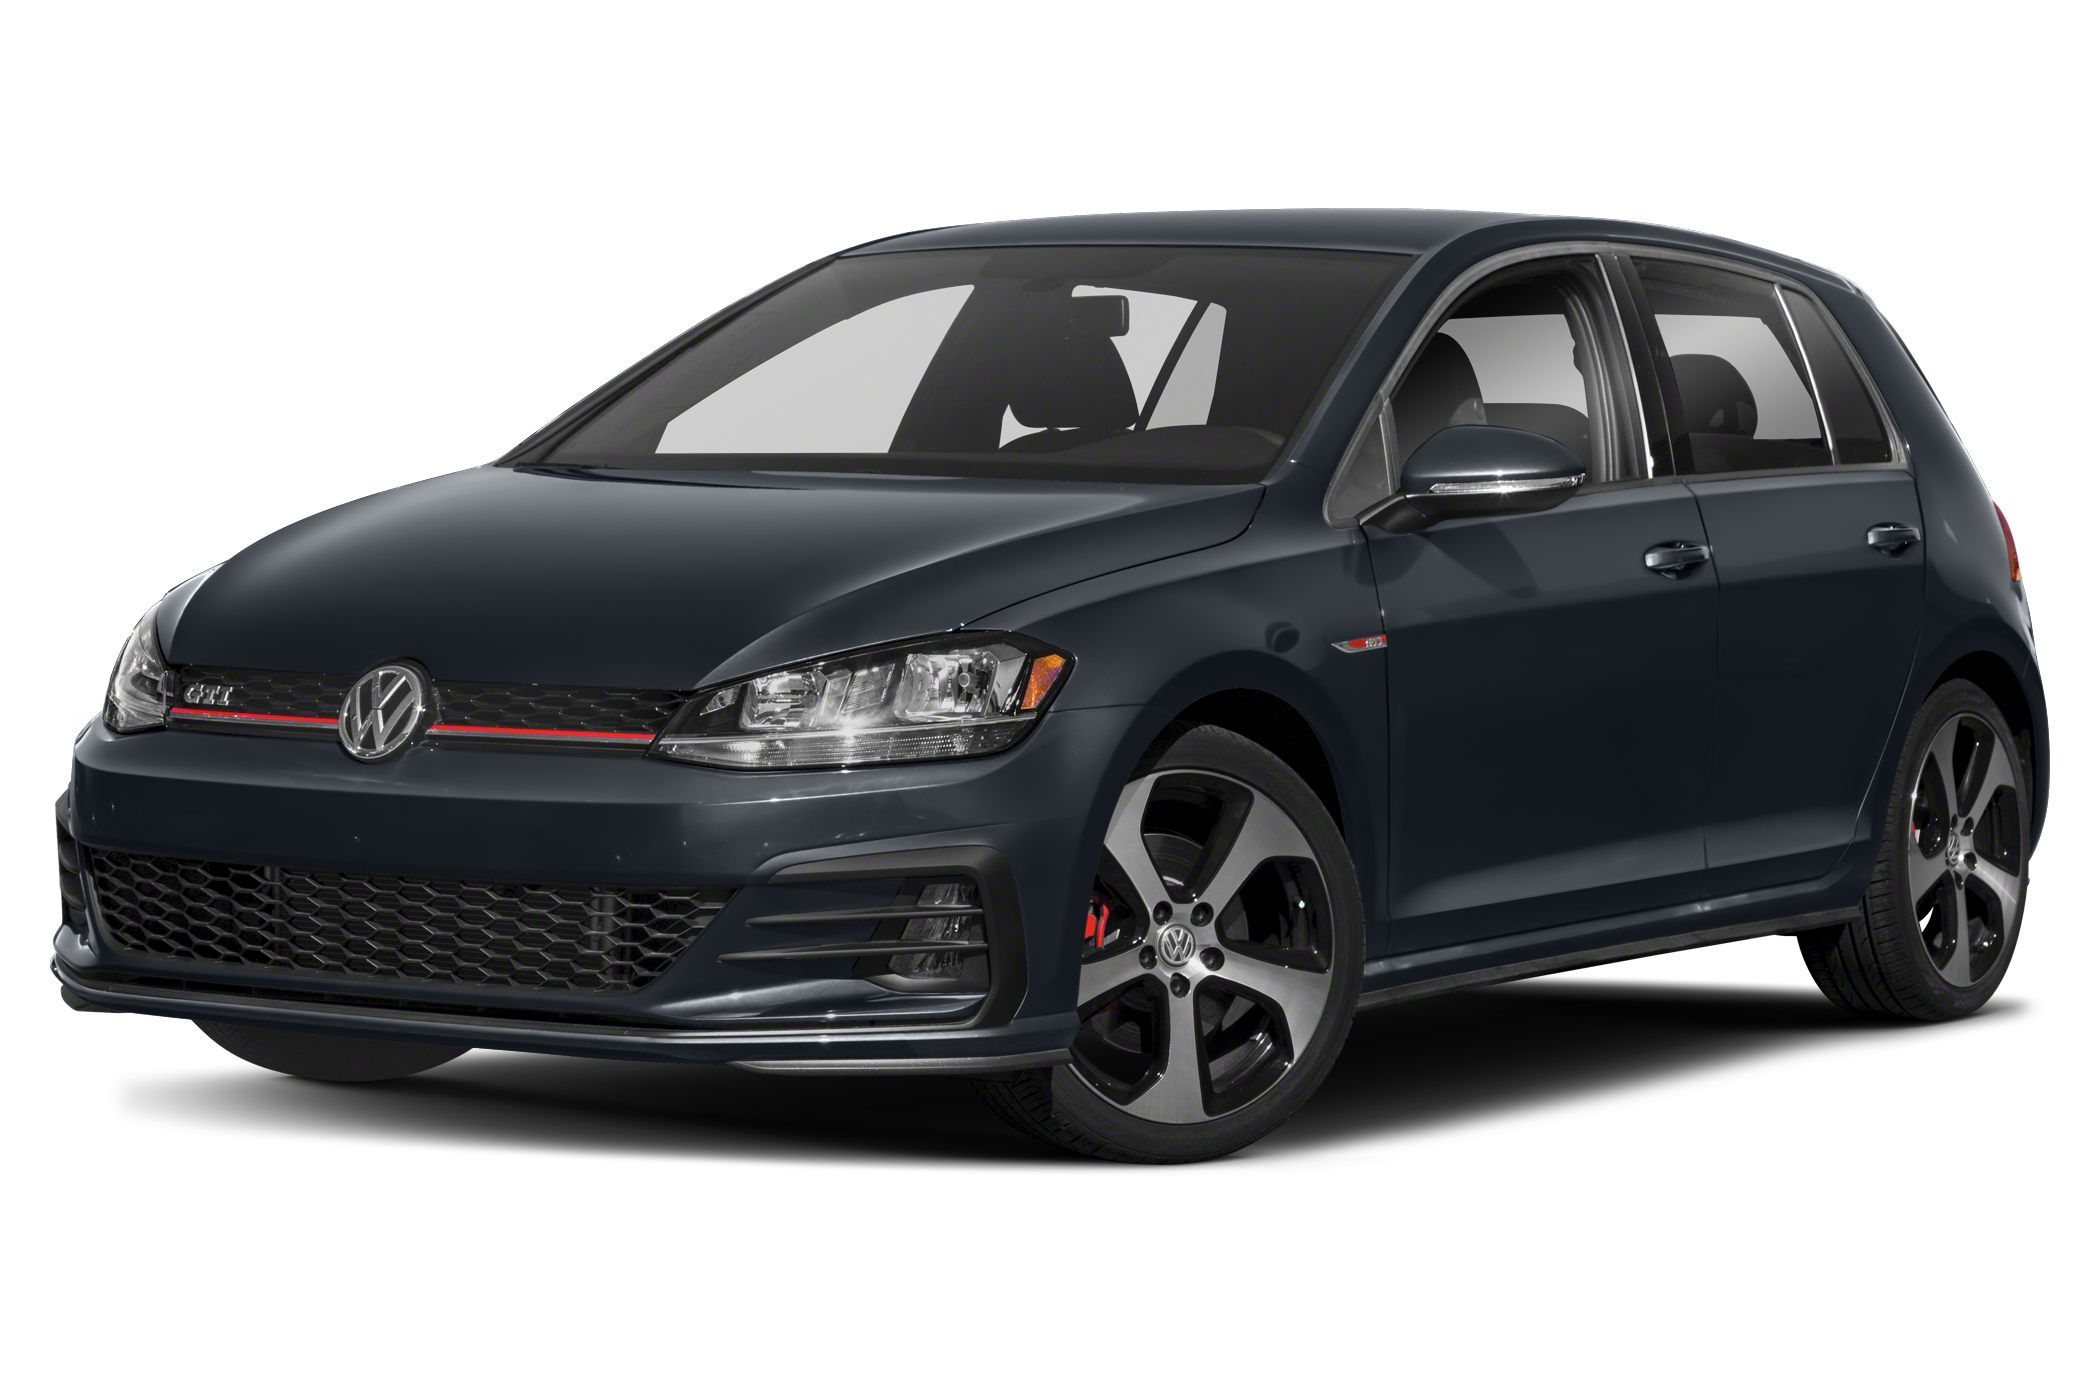 VW GTI and Golf R lead in manual take rate, but Sportwagen buyers like to shift, too